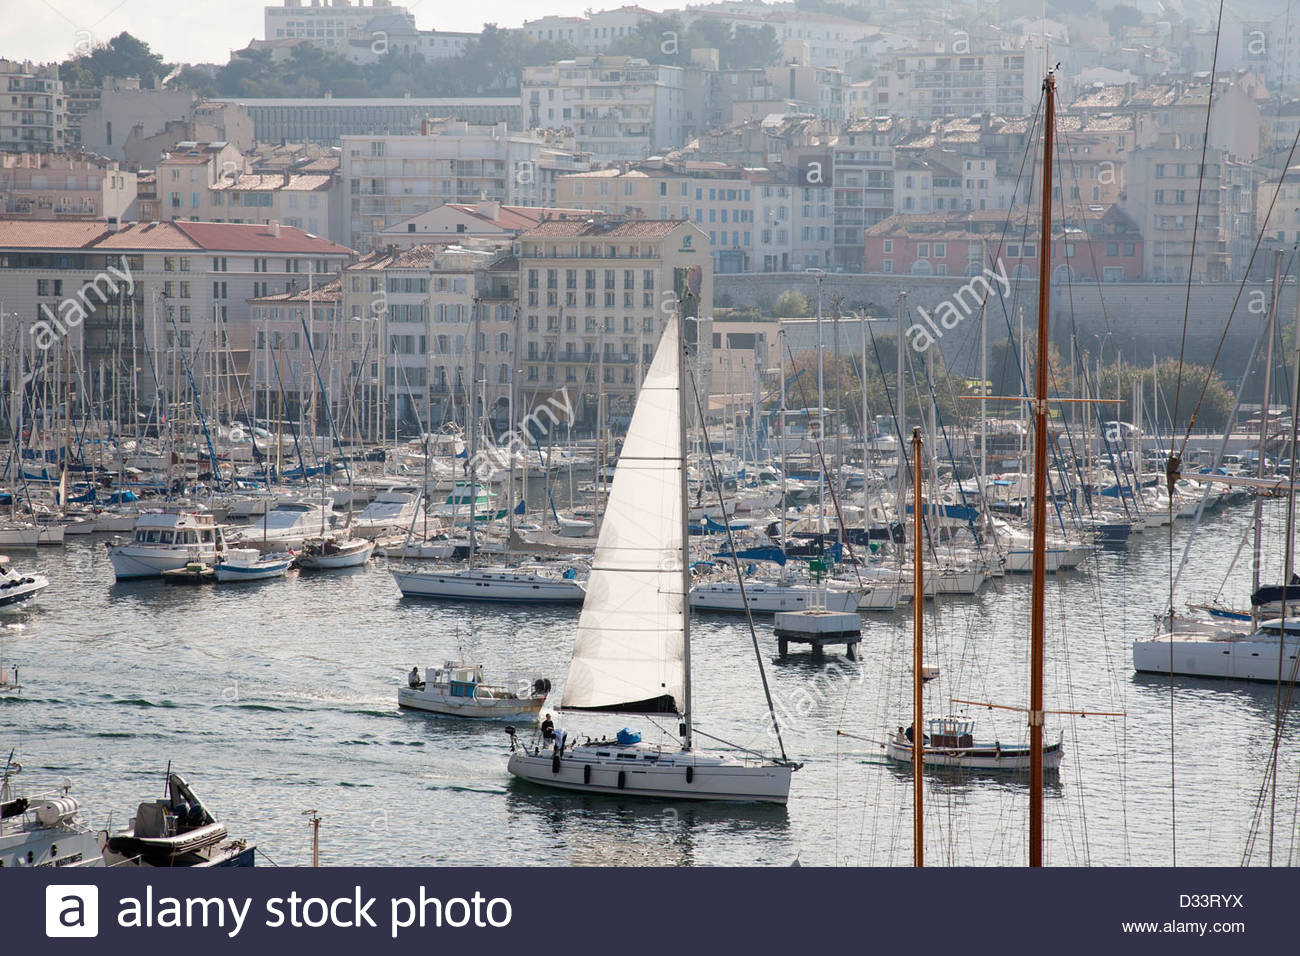 old port,marseille,provence,france,europe - Stock Image